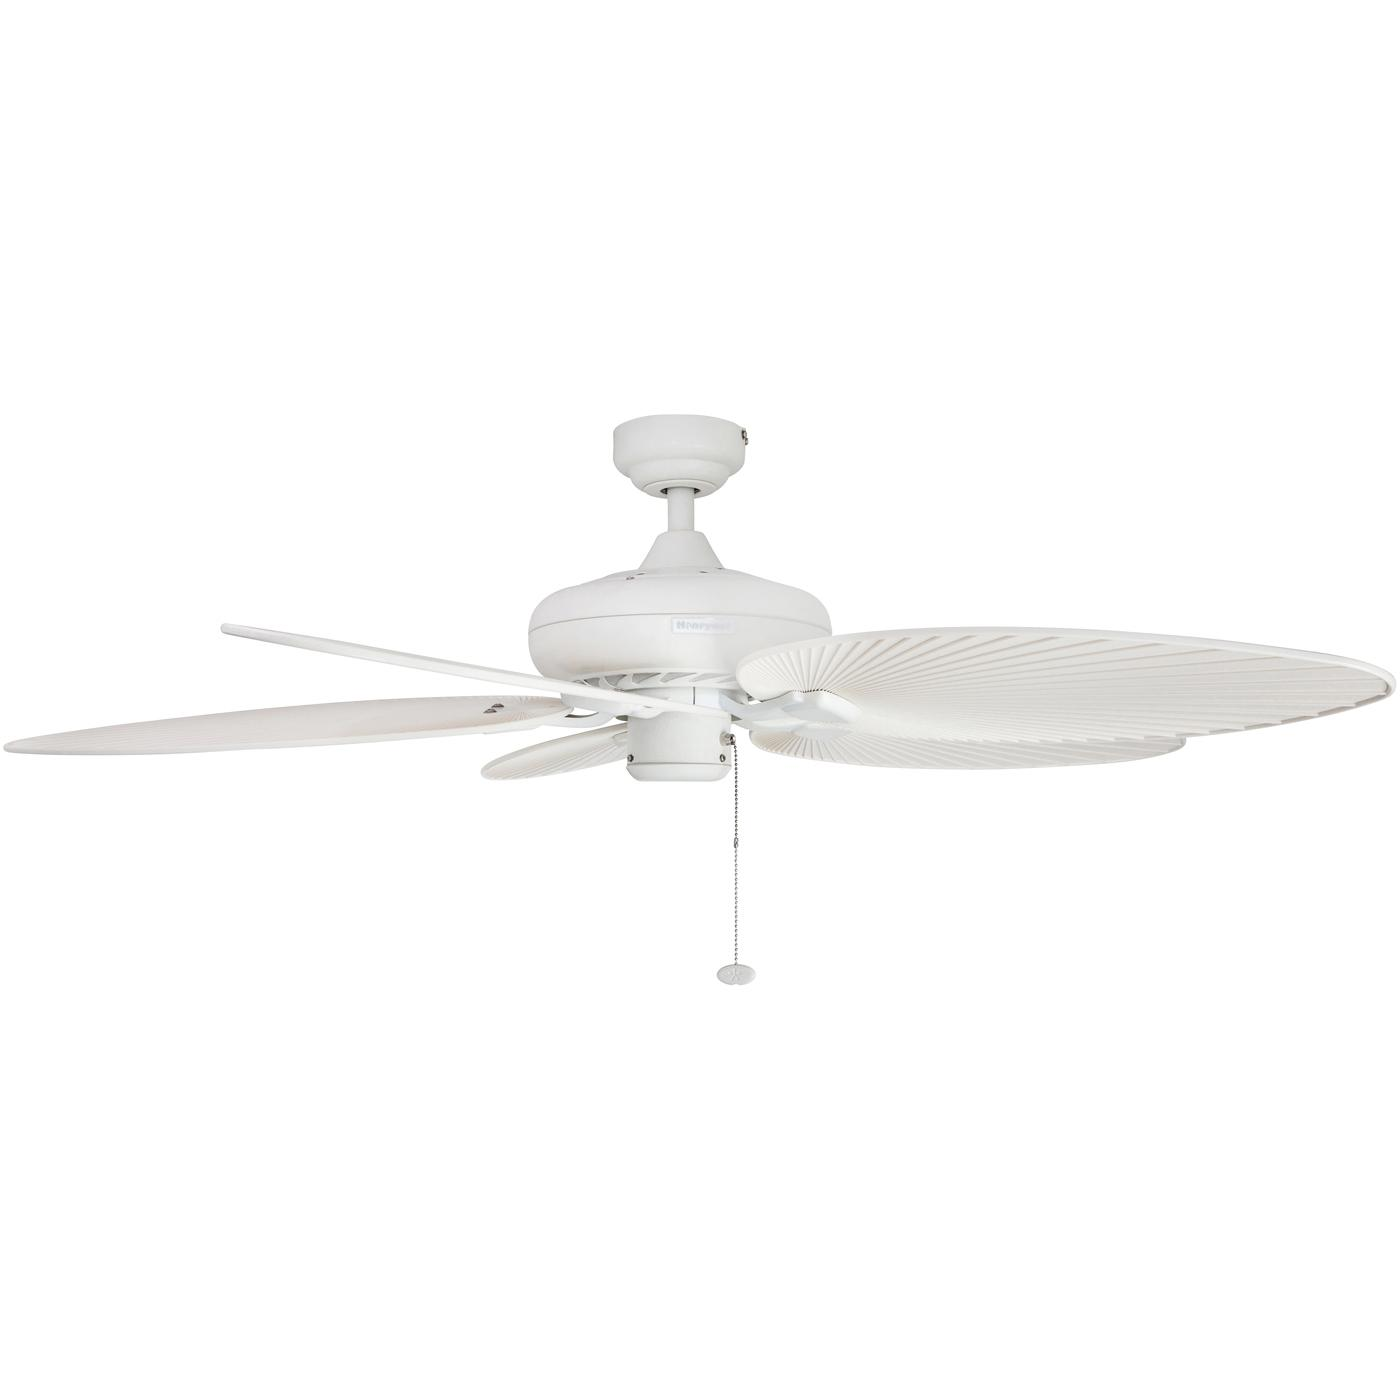 Tropical Outdoor Ceiling Fan: Honeywell Ceiling Fans 50200 Palm Island Tropical Indoor